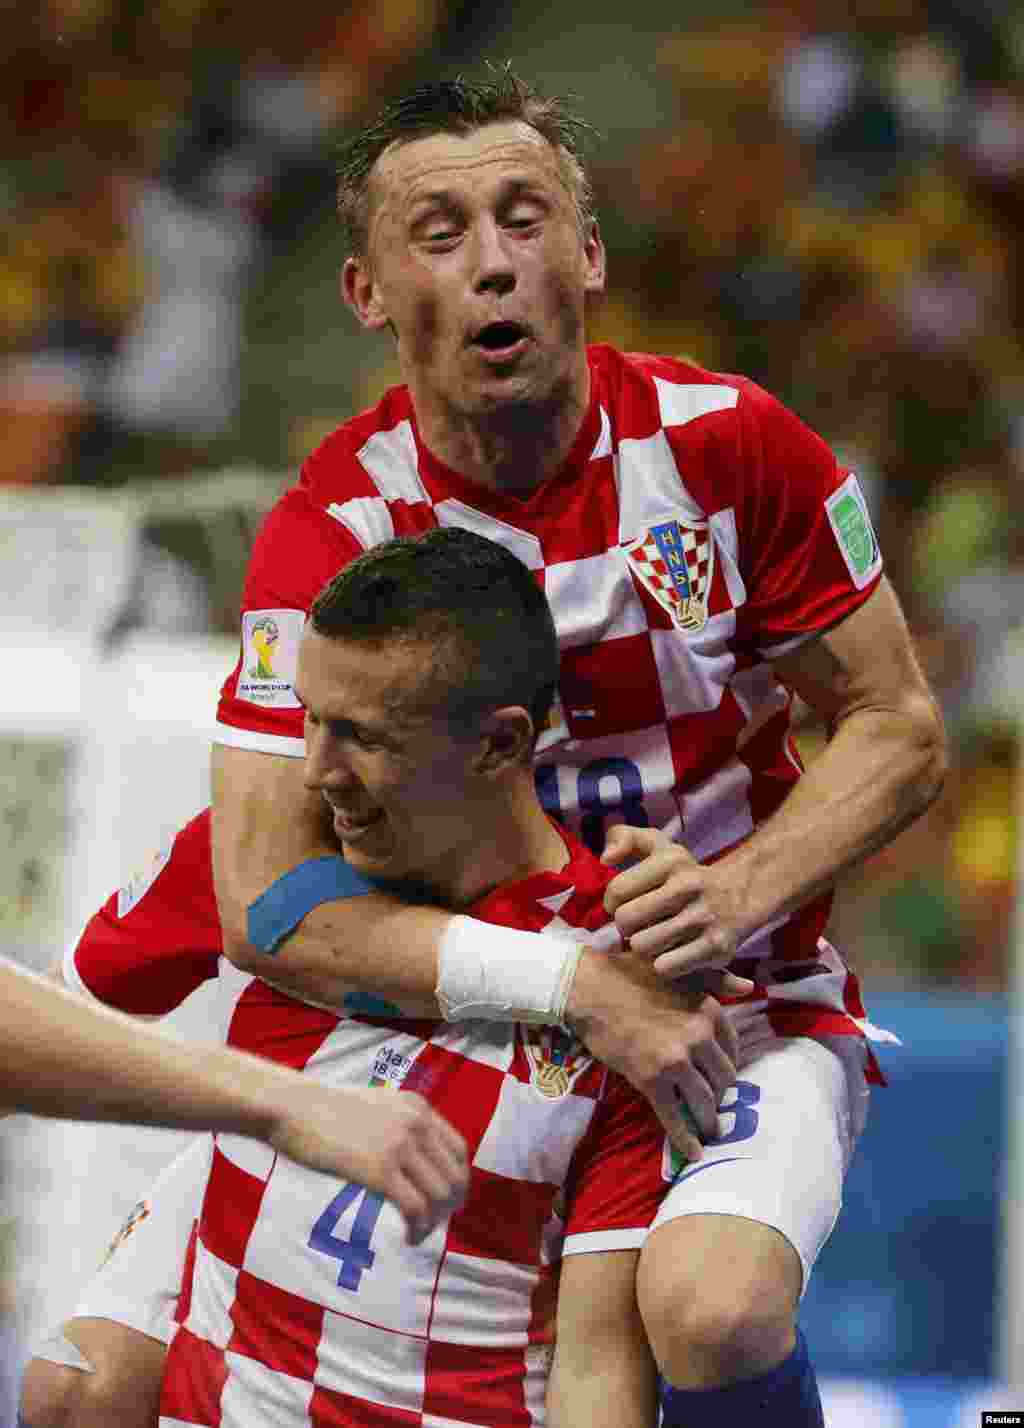 Croatia's Ivan Perisic celebrates after scoring a goal with teammate Ivica Olic (top) during their 2014 World Cup Group A soccer match against Cameroon, at the Amazonia arena, in Manaus, June 18, 2014.